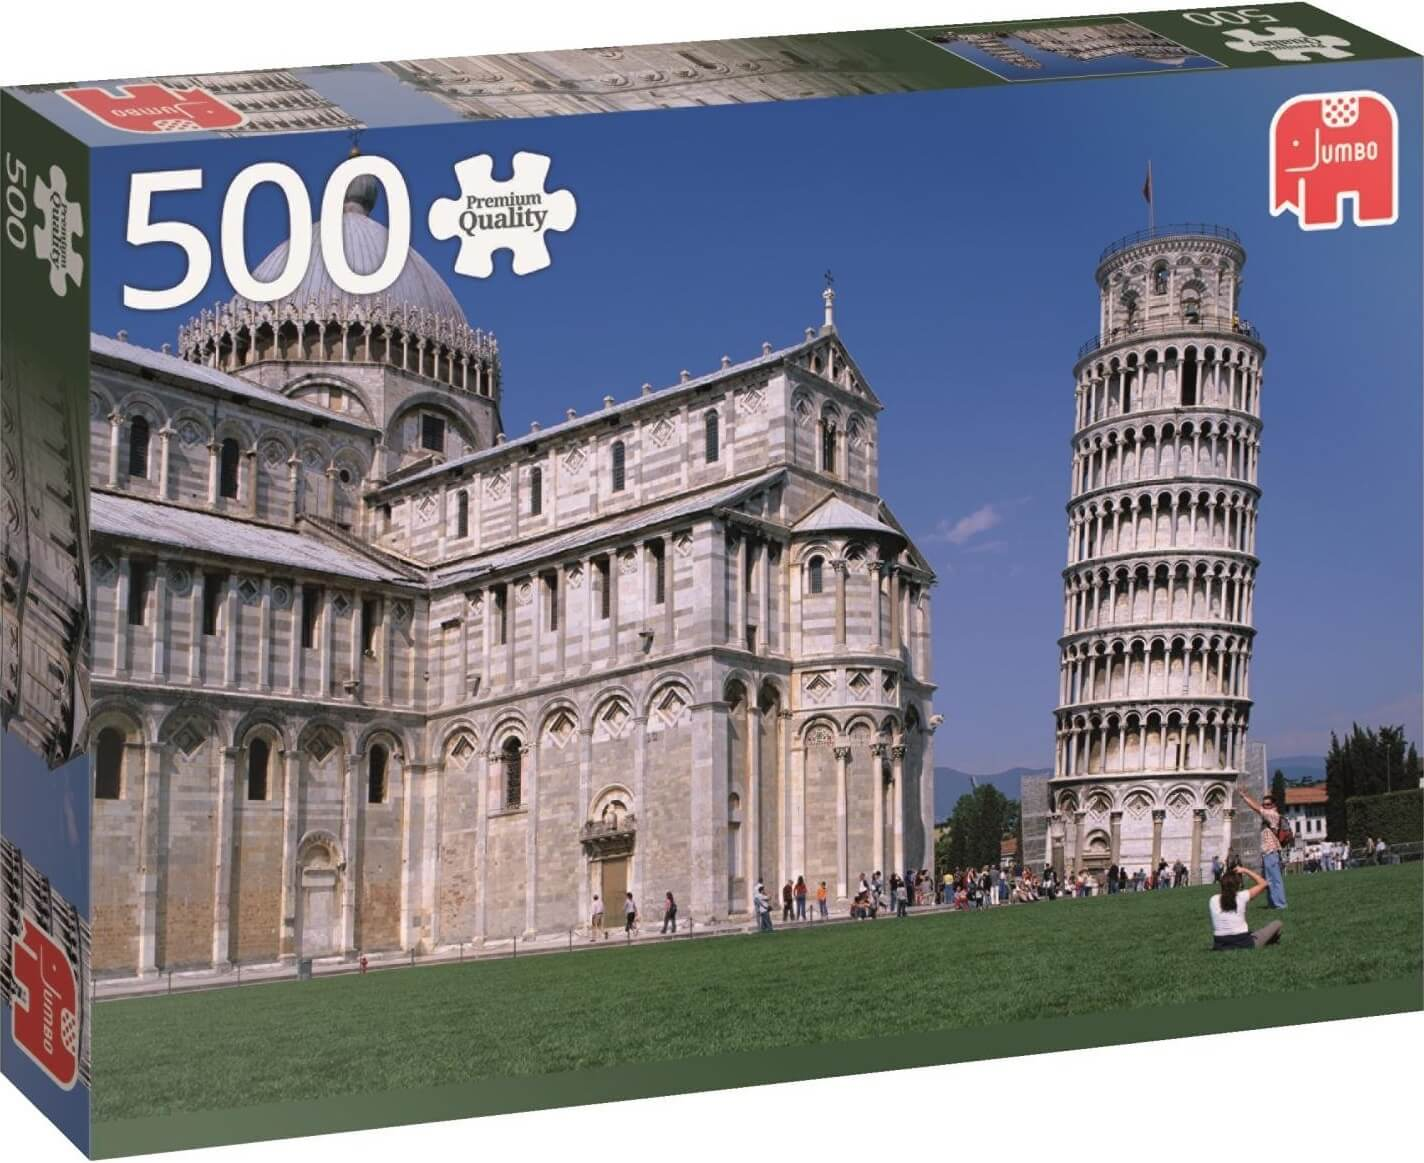 500 Tower of Pisa